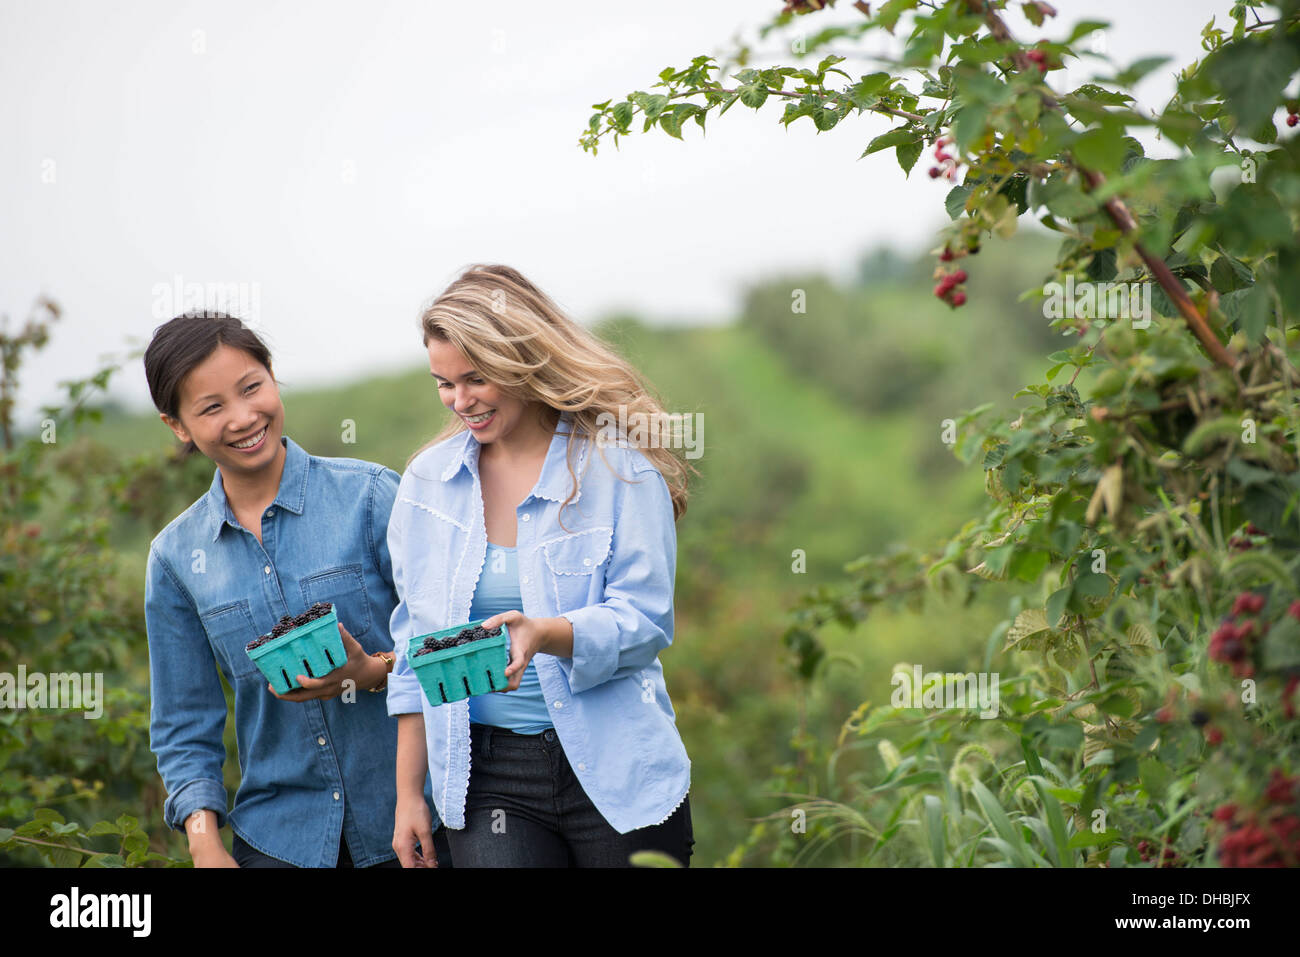 Picking blackberry fruits on an organic farm. Two women talking and walking among the fruit bushes. - Stock Image